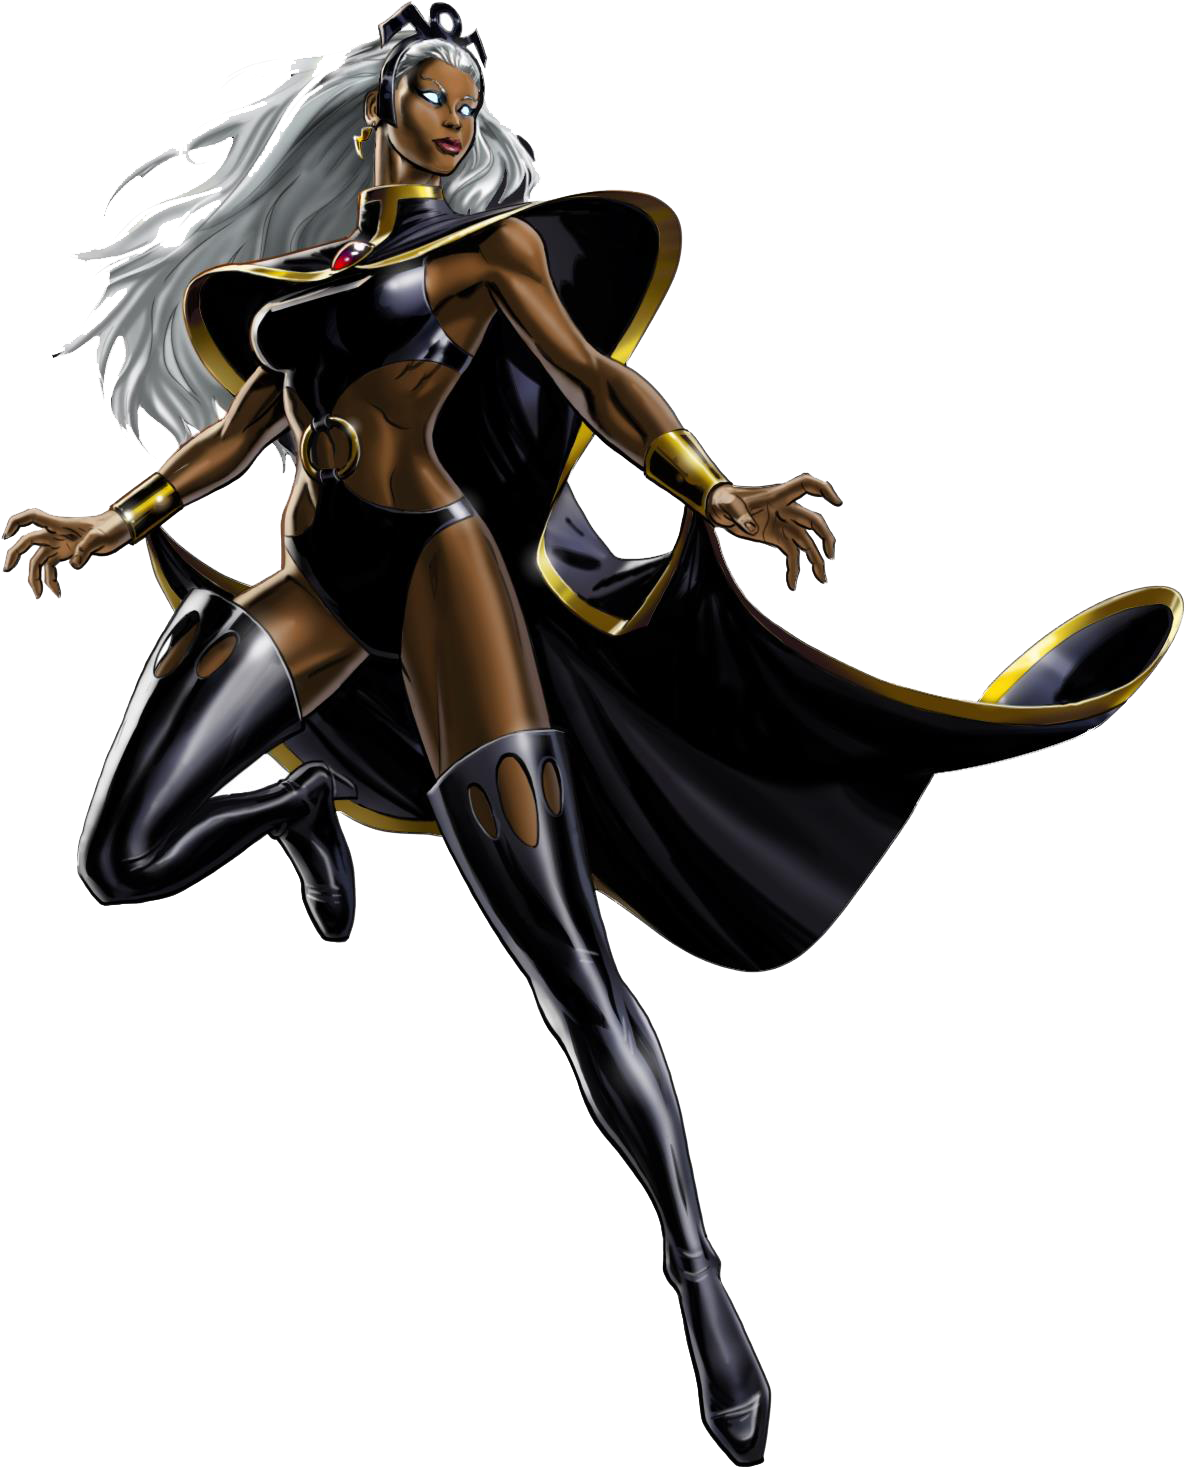 Hurricane clipart satellite. Marvel avengers alliance storm